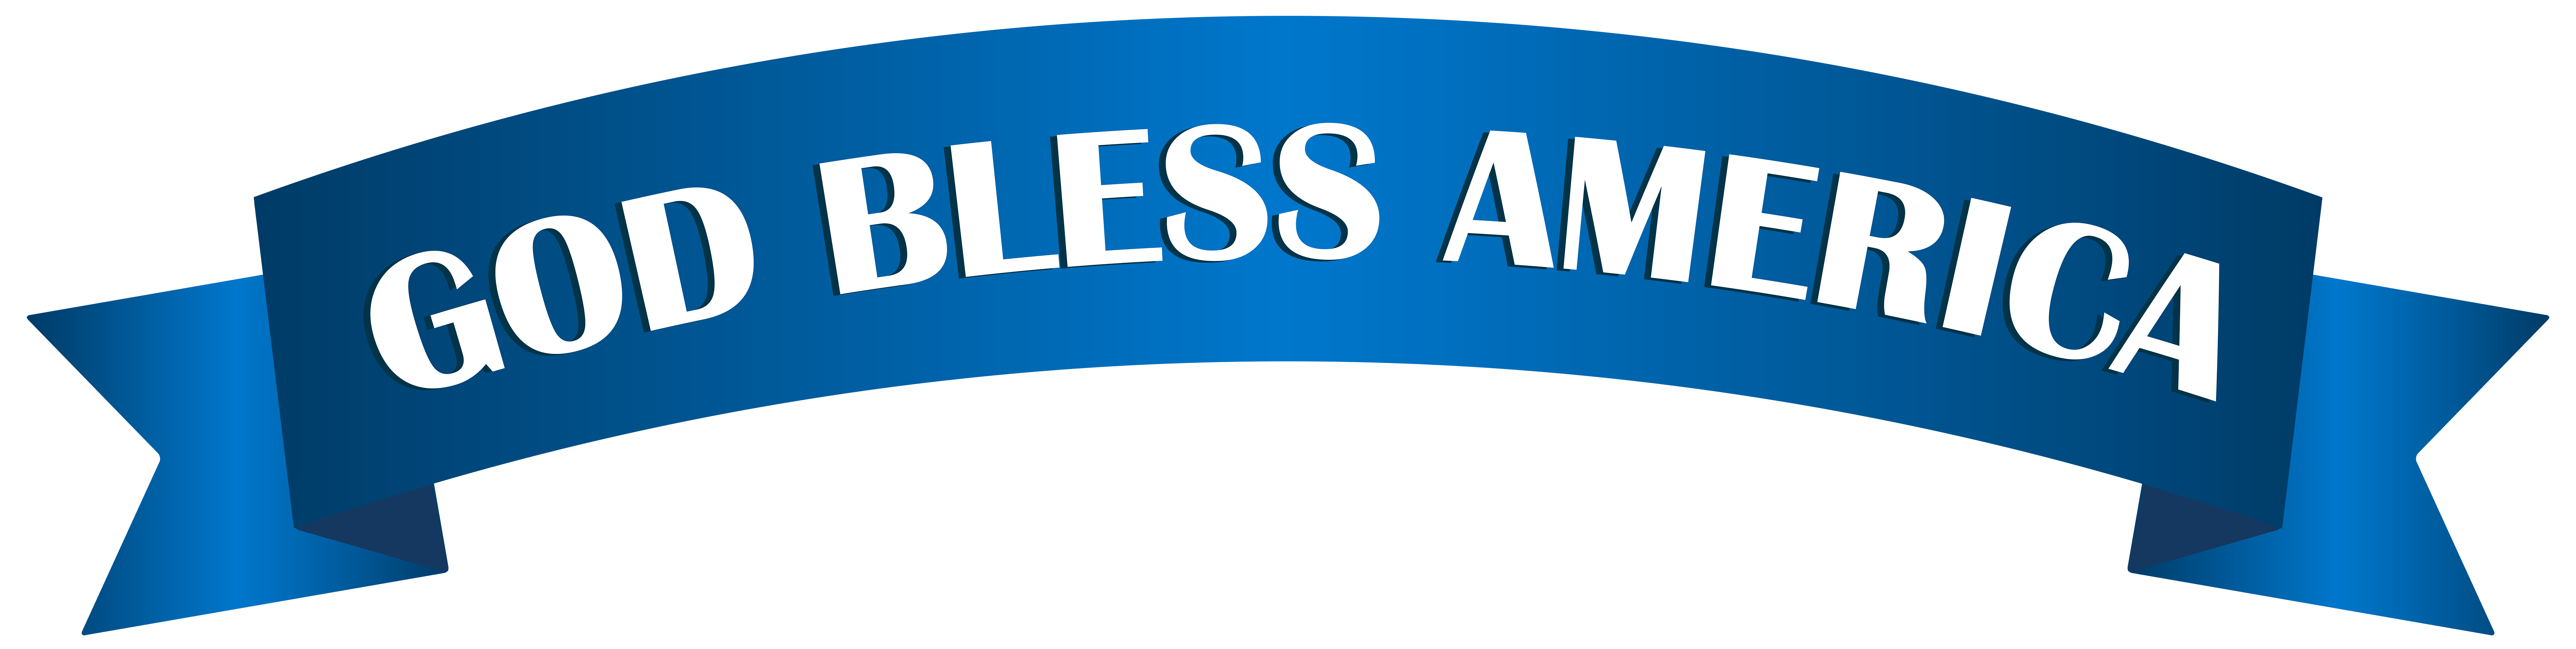 God clipart clipart us. Bless america banner png